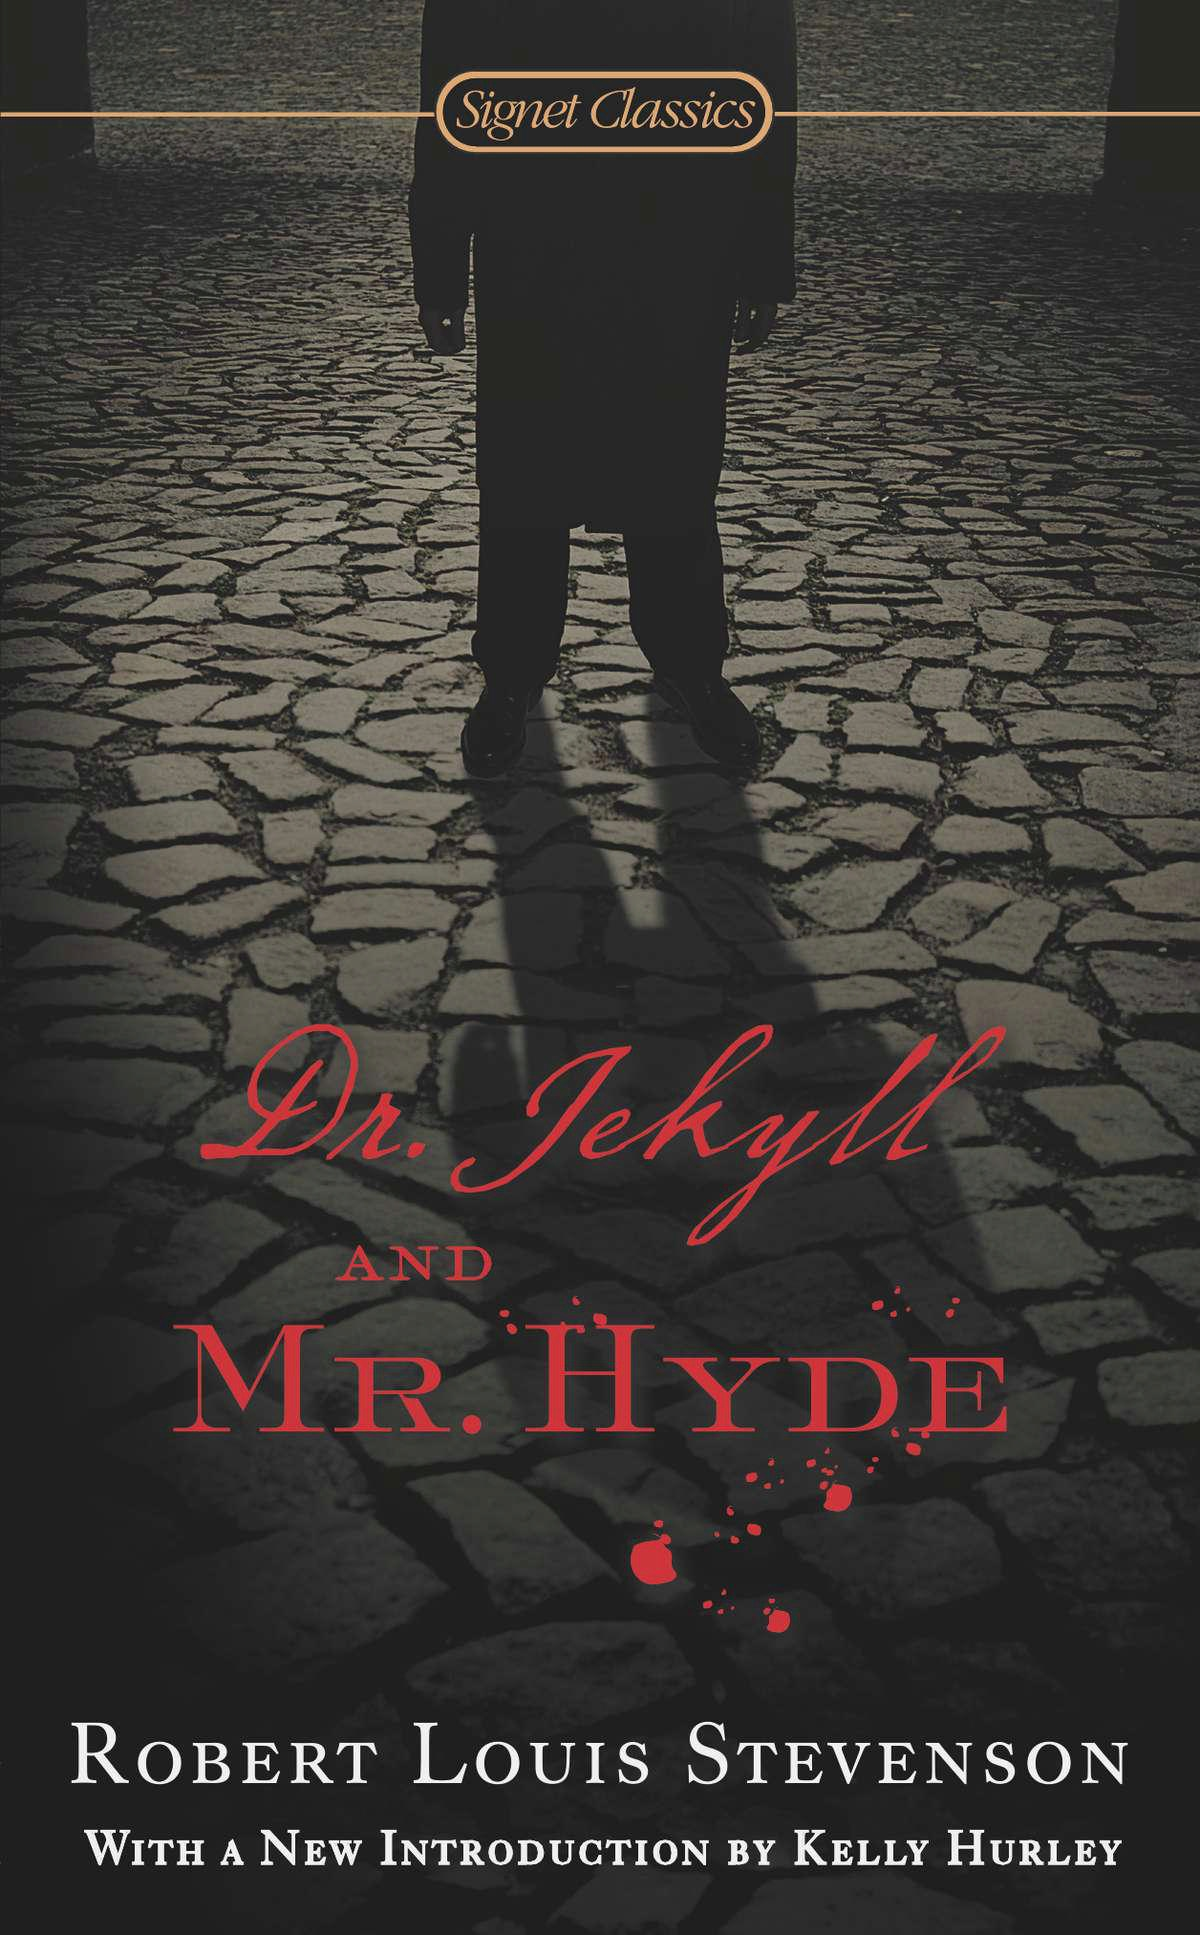 essay on dr. jekyll to mr. hyde Sample of drjekyll and mrhyde essay (you can also order custom written drjekyll and mrhyde essay.